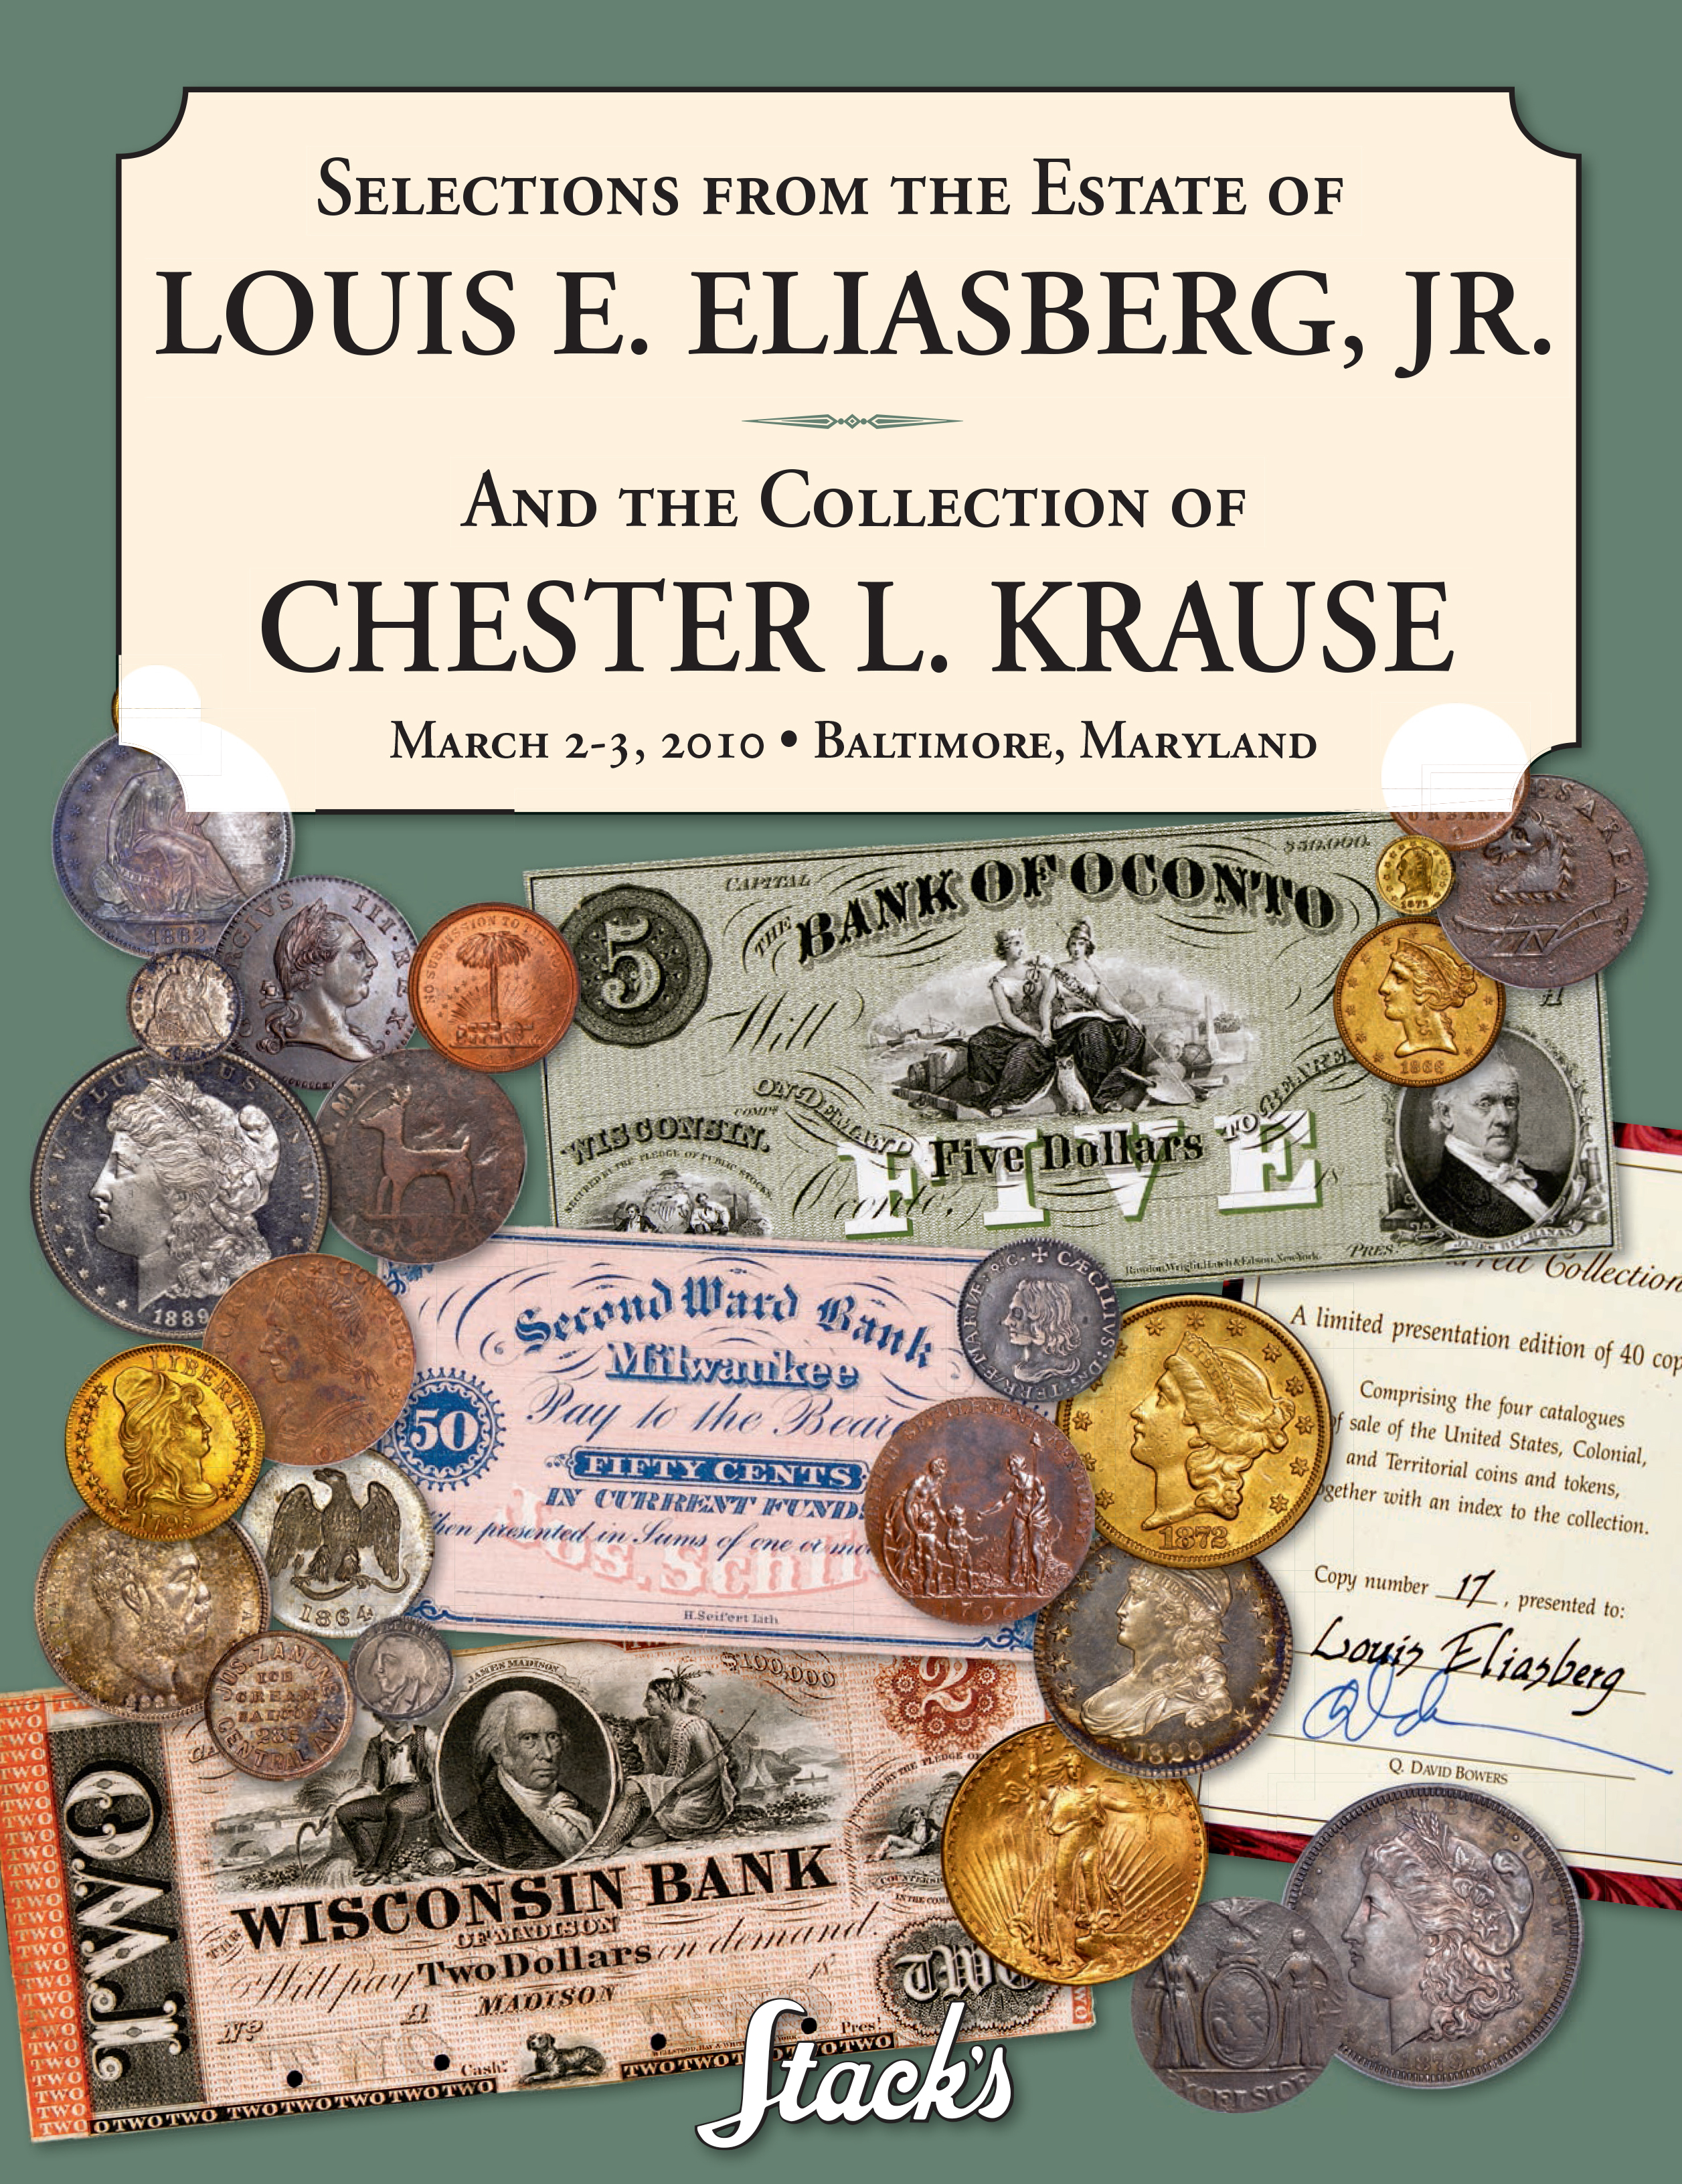 Selections from the Estate of Louis E. Eliasberg, Jr. and the Colelction of Chester L. Krause